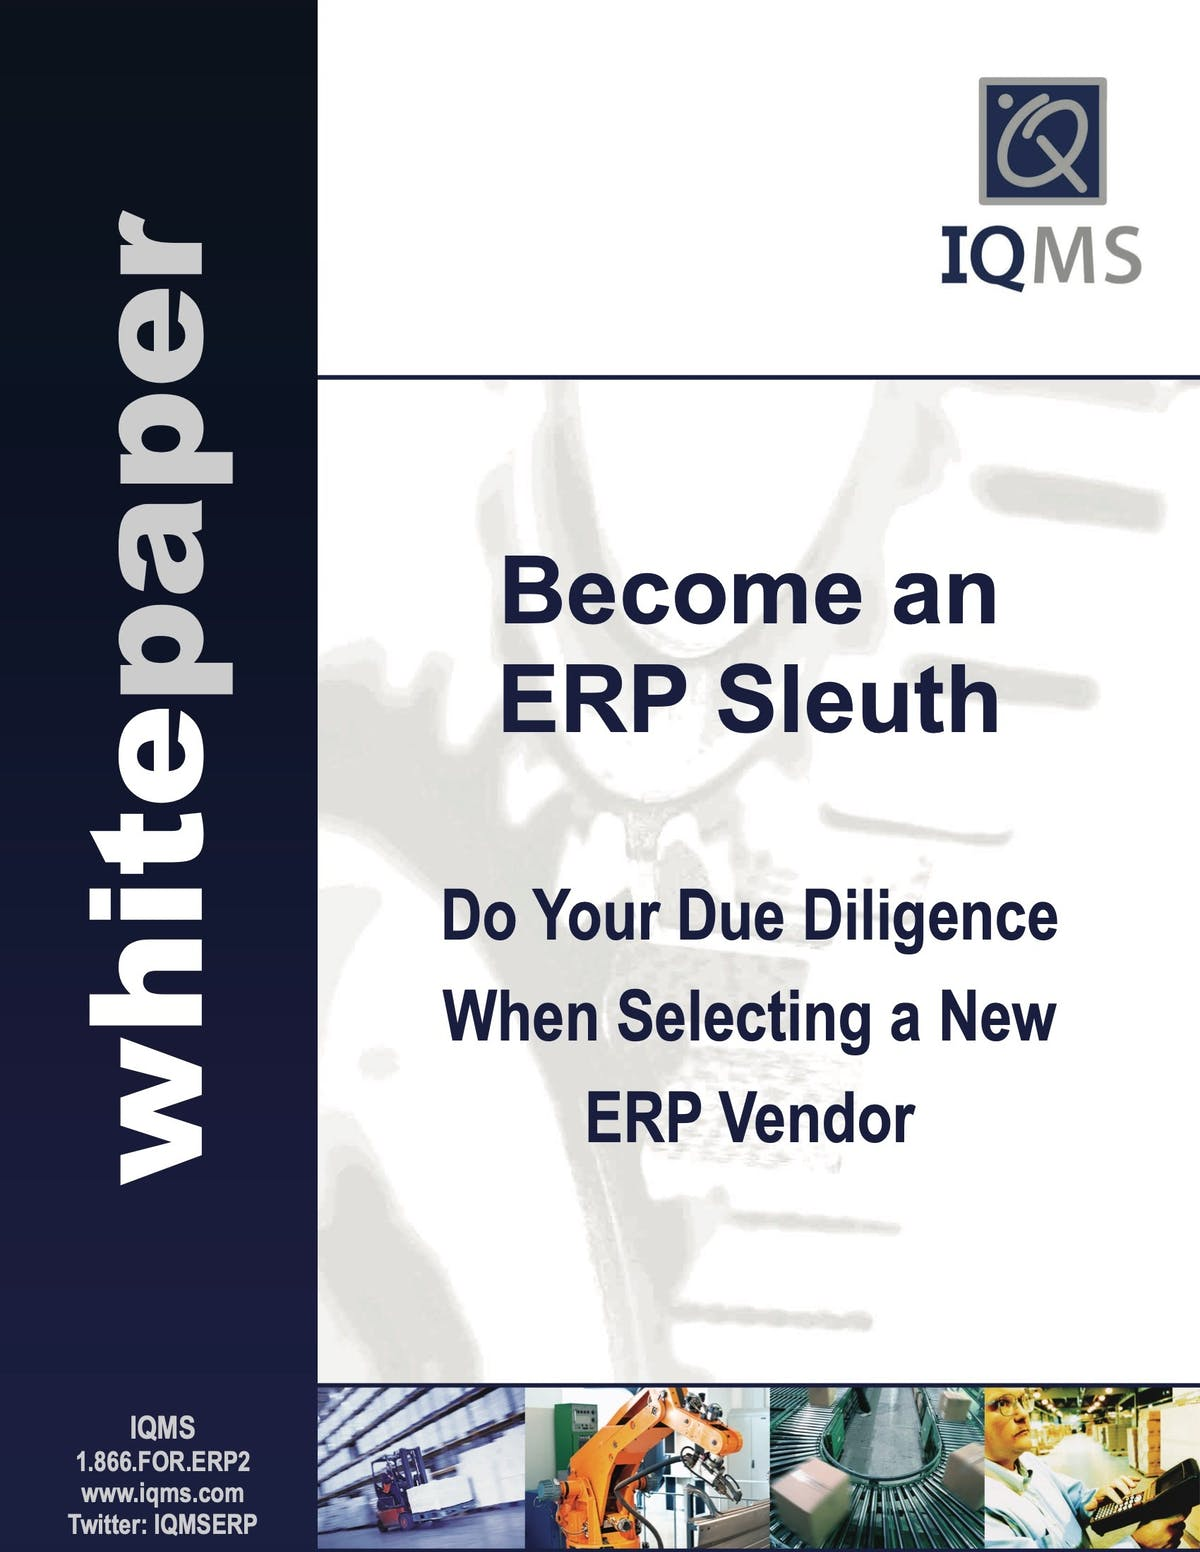 EnterpriseIQ White Paper - Become an ERP Sleuth